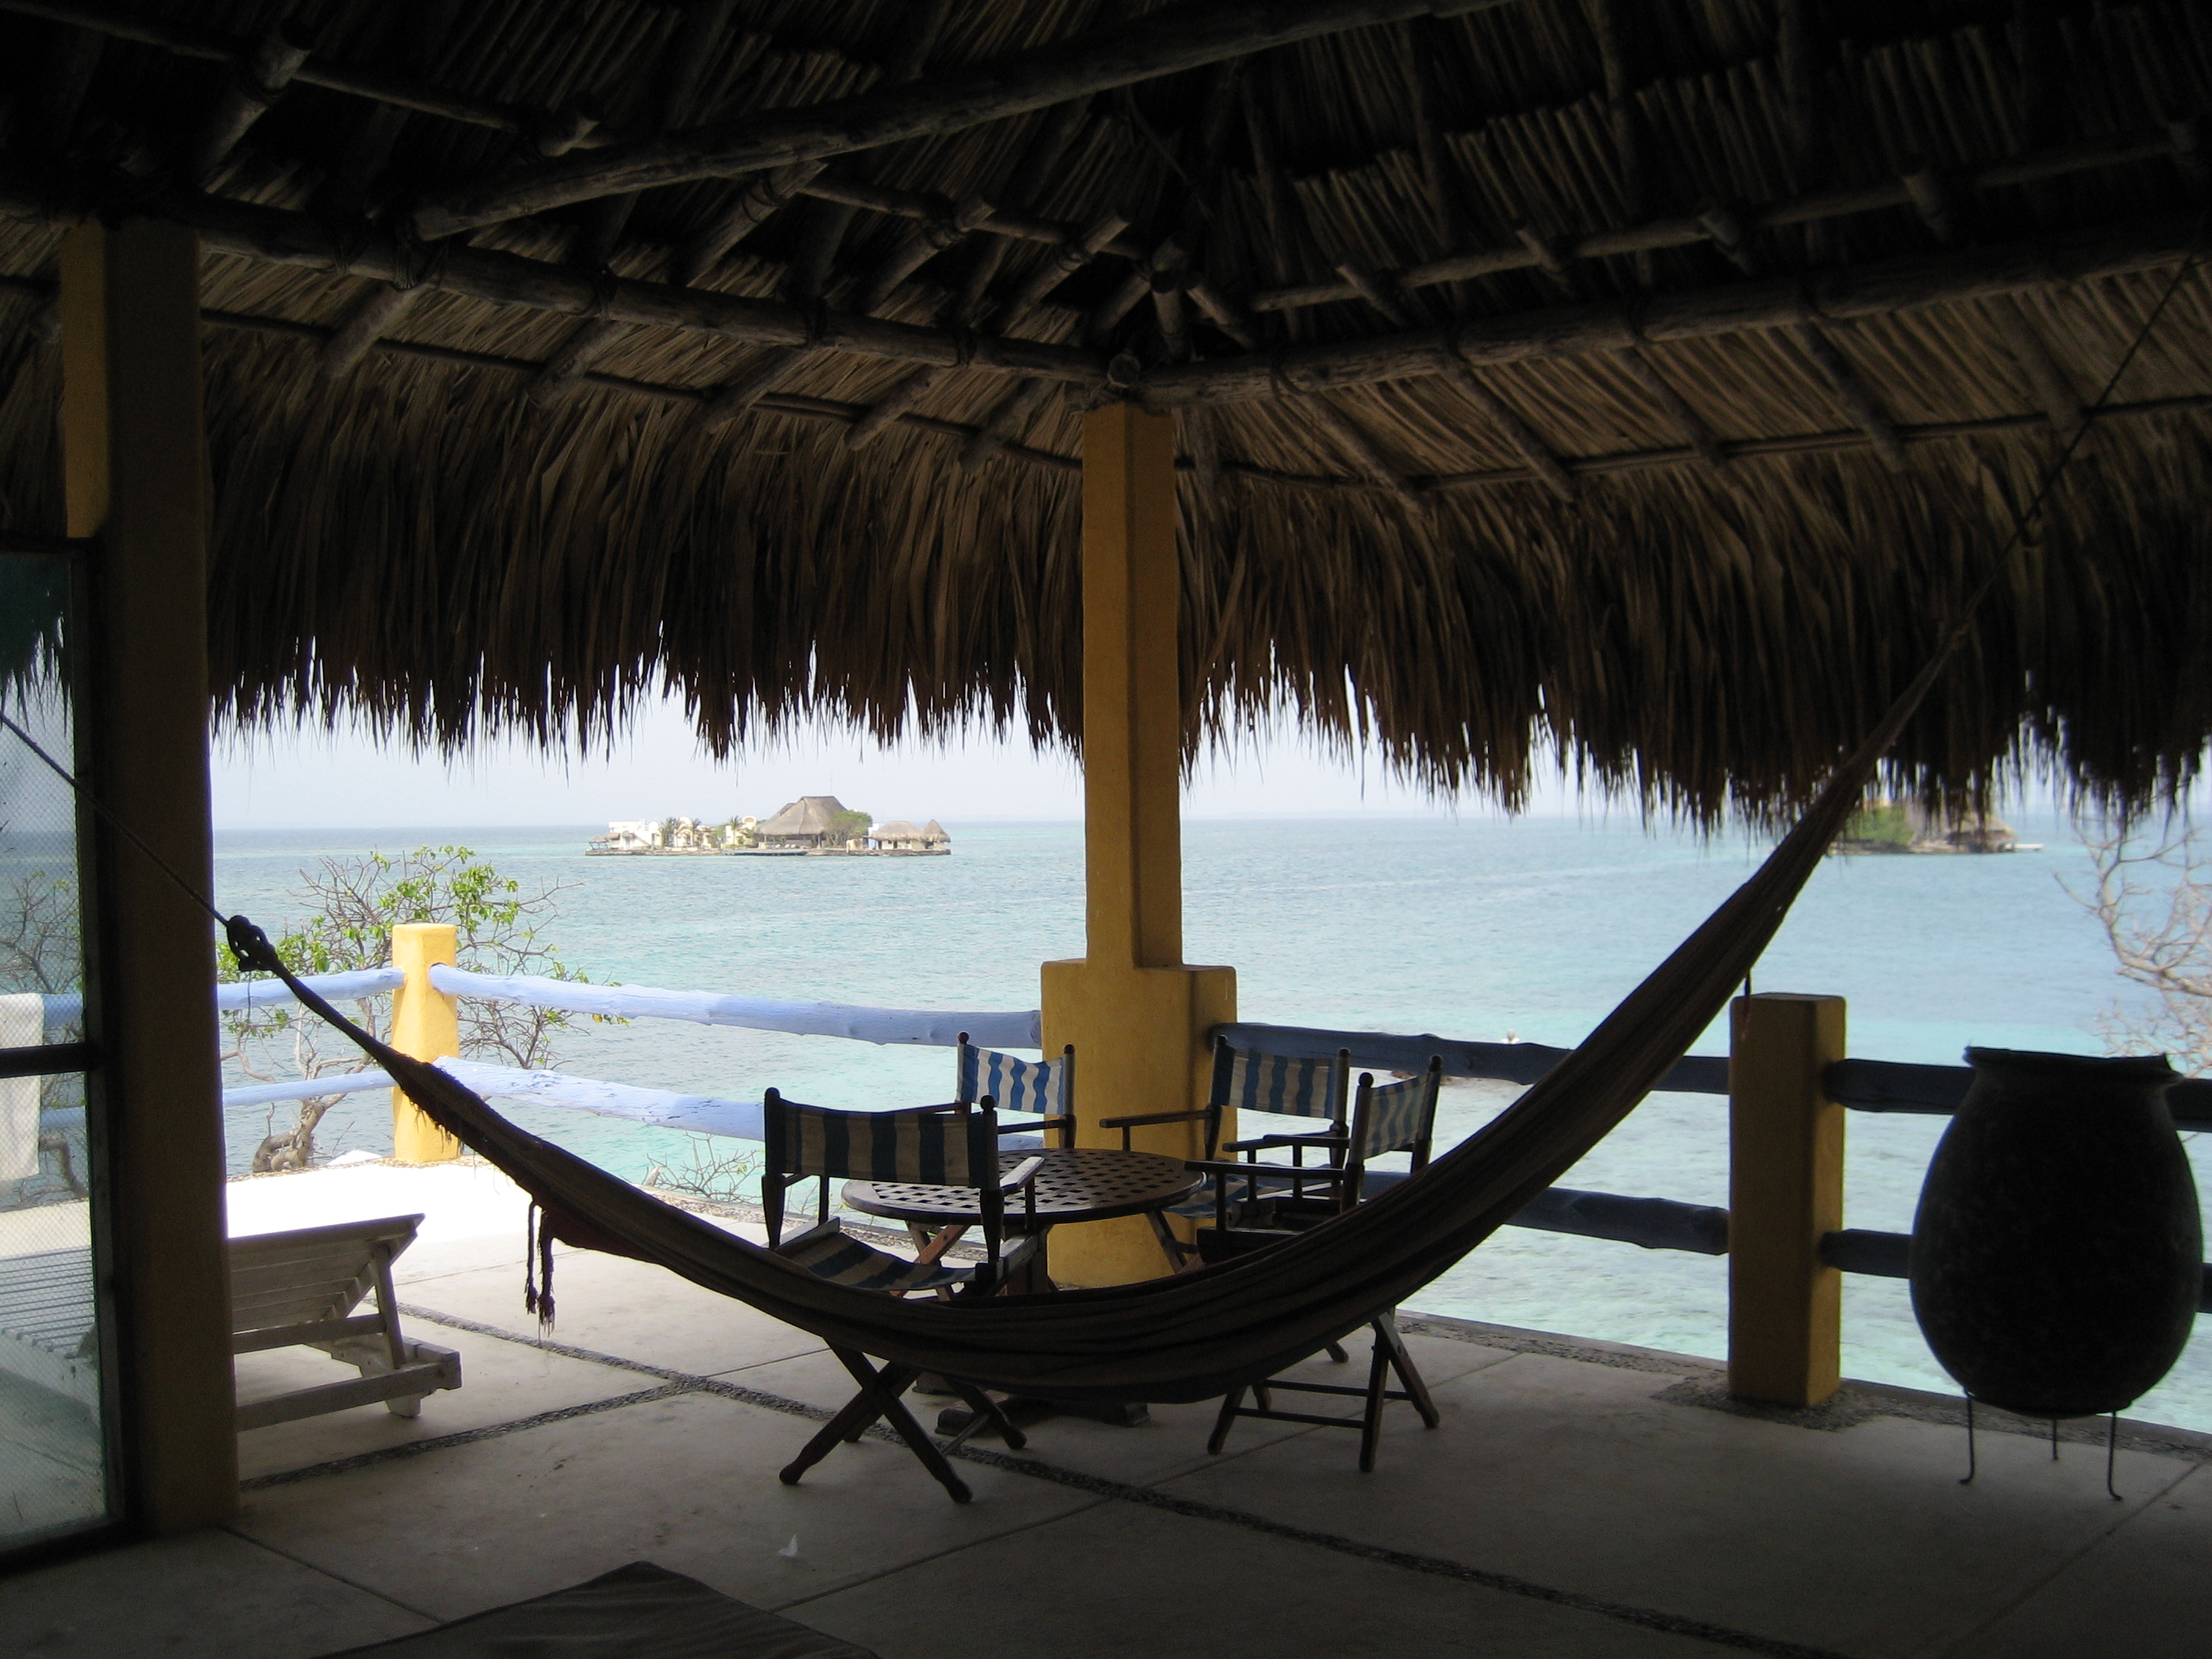 The viewing platform on Isla Pirata, off the coast of Colombia.